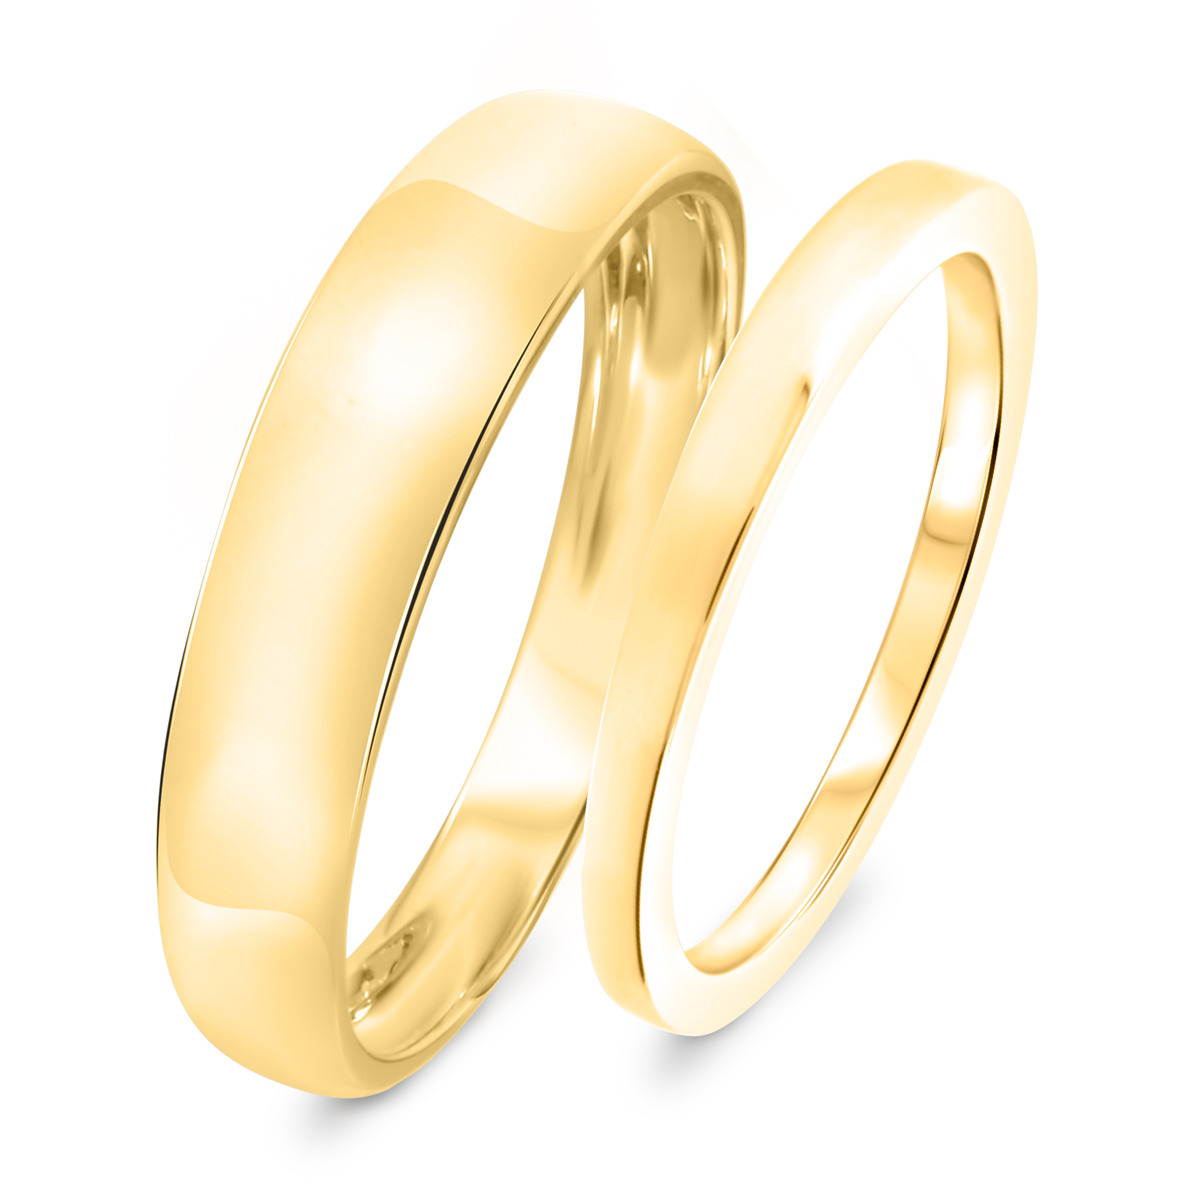 Traditional Wedding Band Set 10K Yellow Gold My Trio Rings